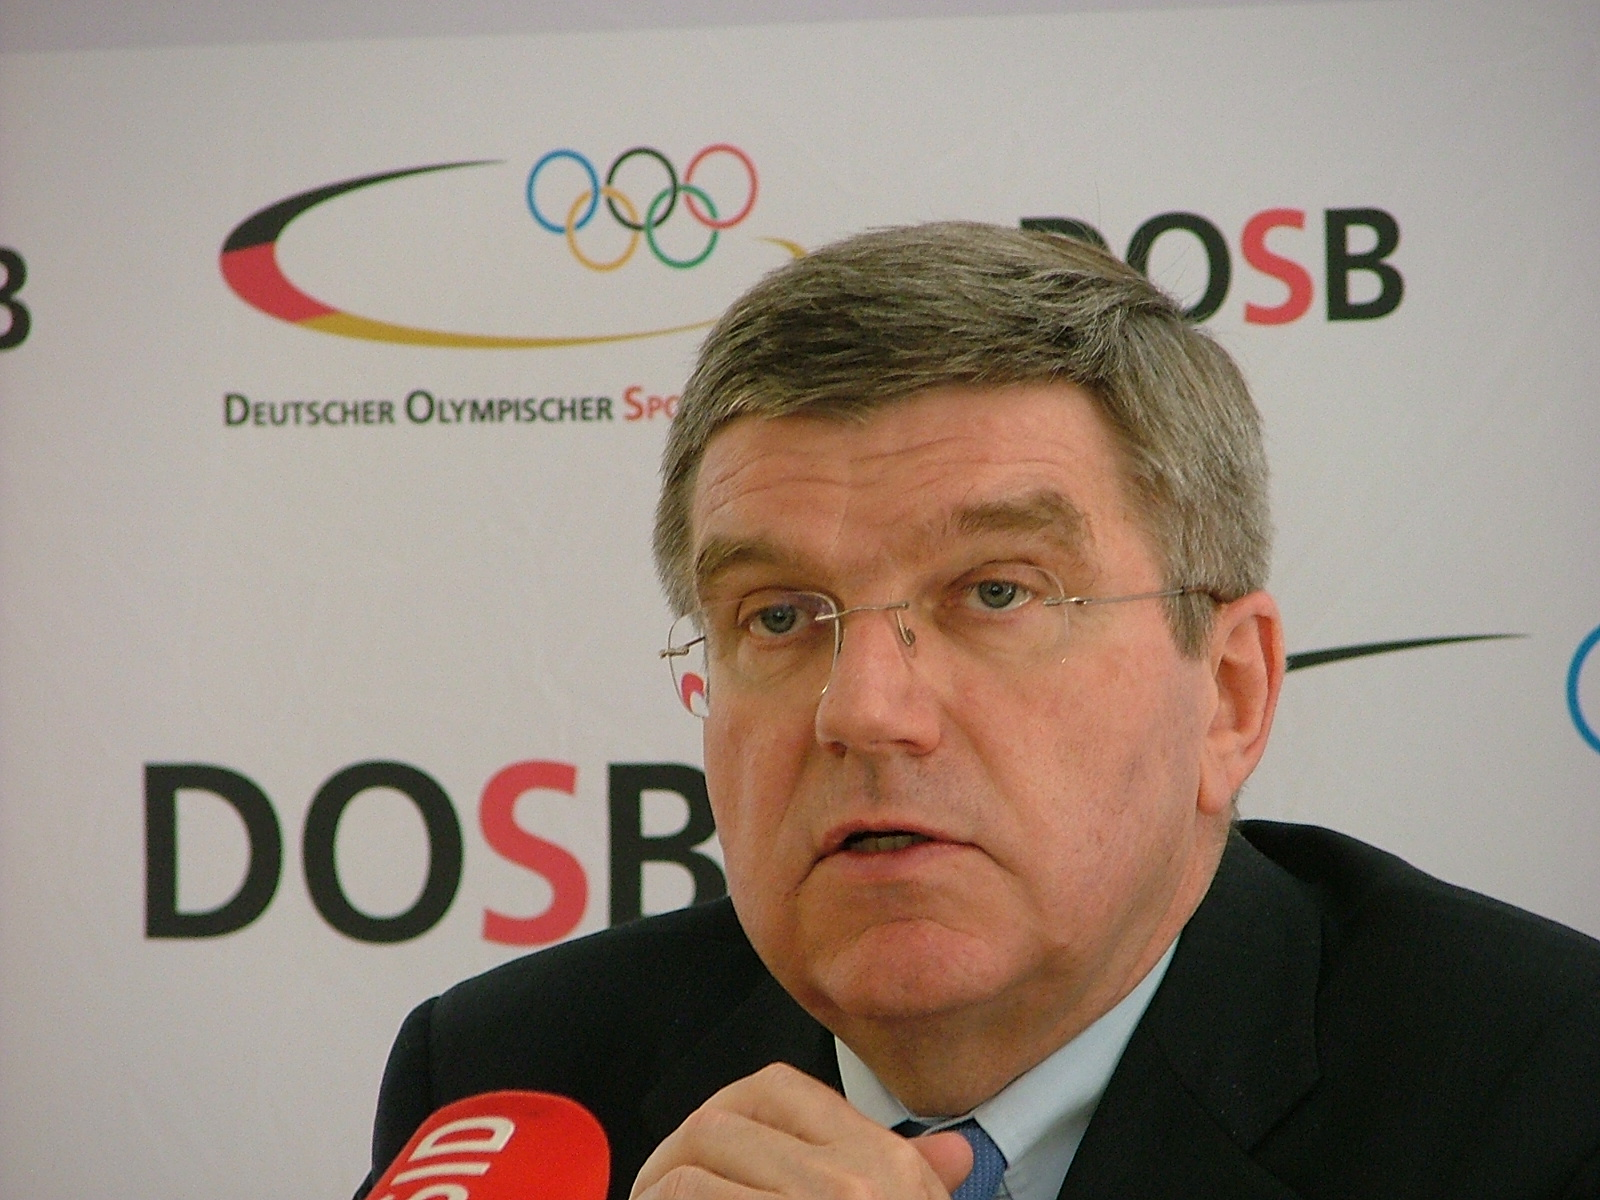 International Olympic Committee President Thomas Bach. By Olaf Kosinsky (Own work) [CC BY-SA 3.0 (http://creativecommons.org/licenses/by-sa/3.0)], via Wikimedia Commons